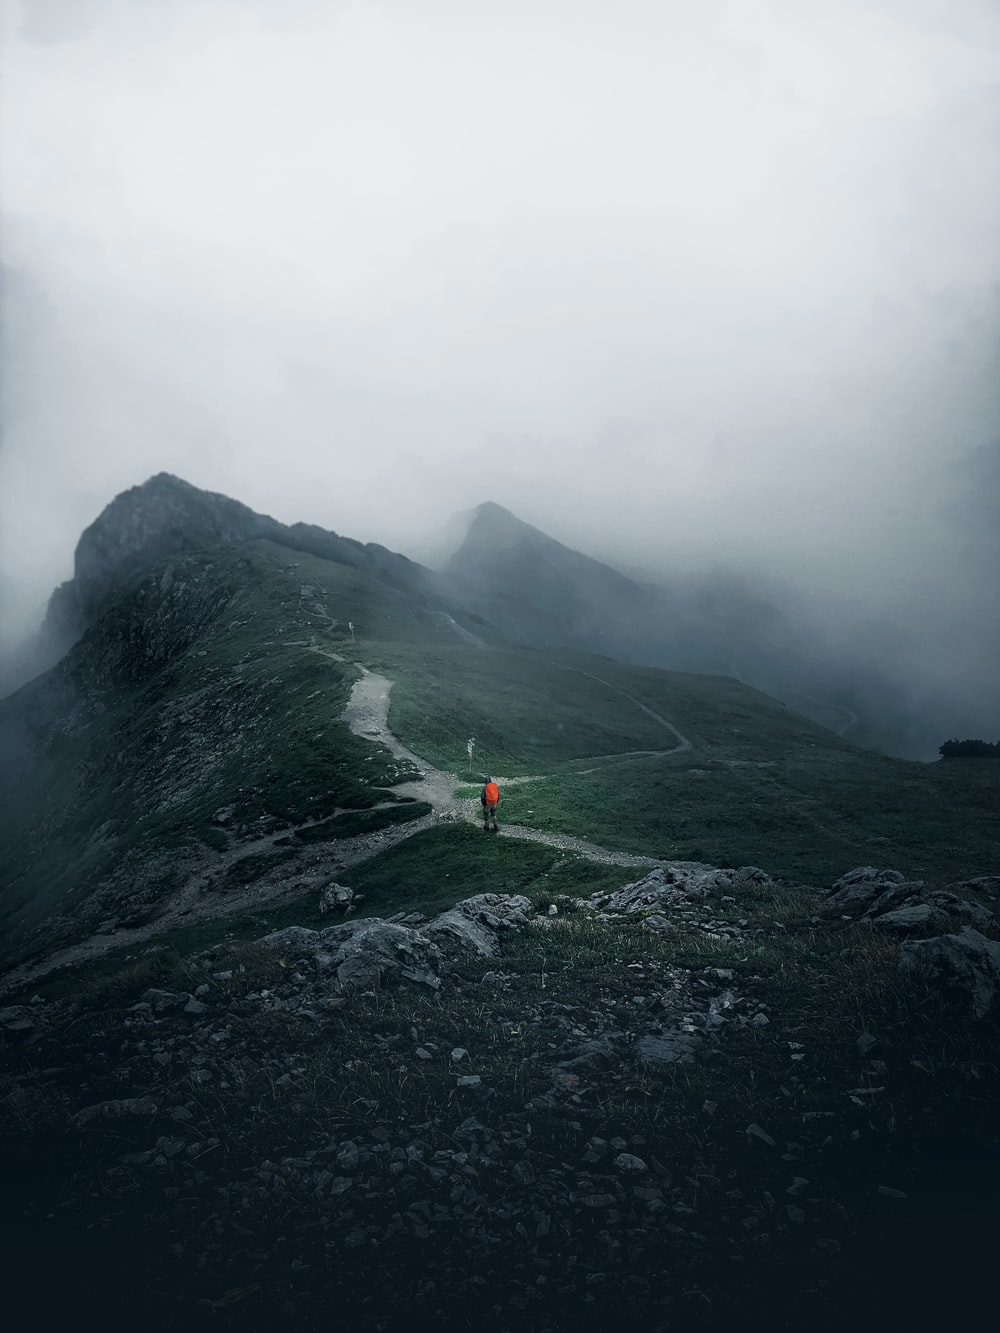 person in orange jacket standing on rock formation during foggy weather